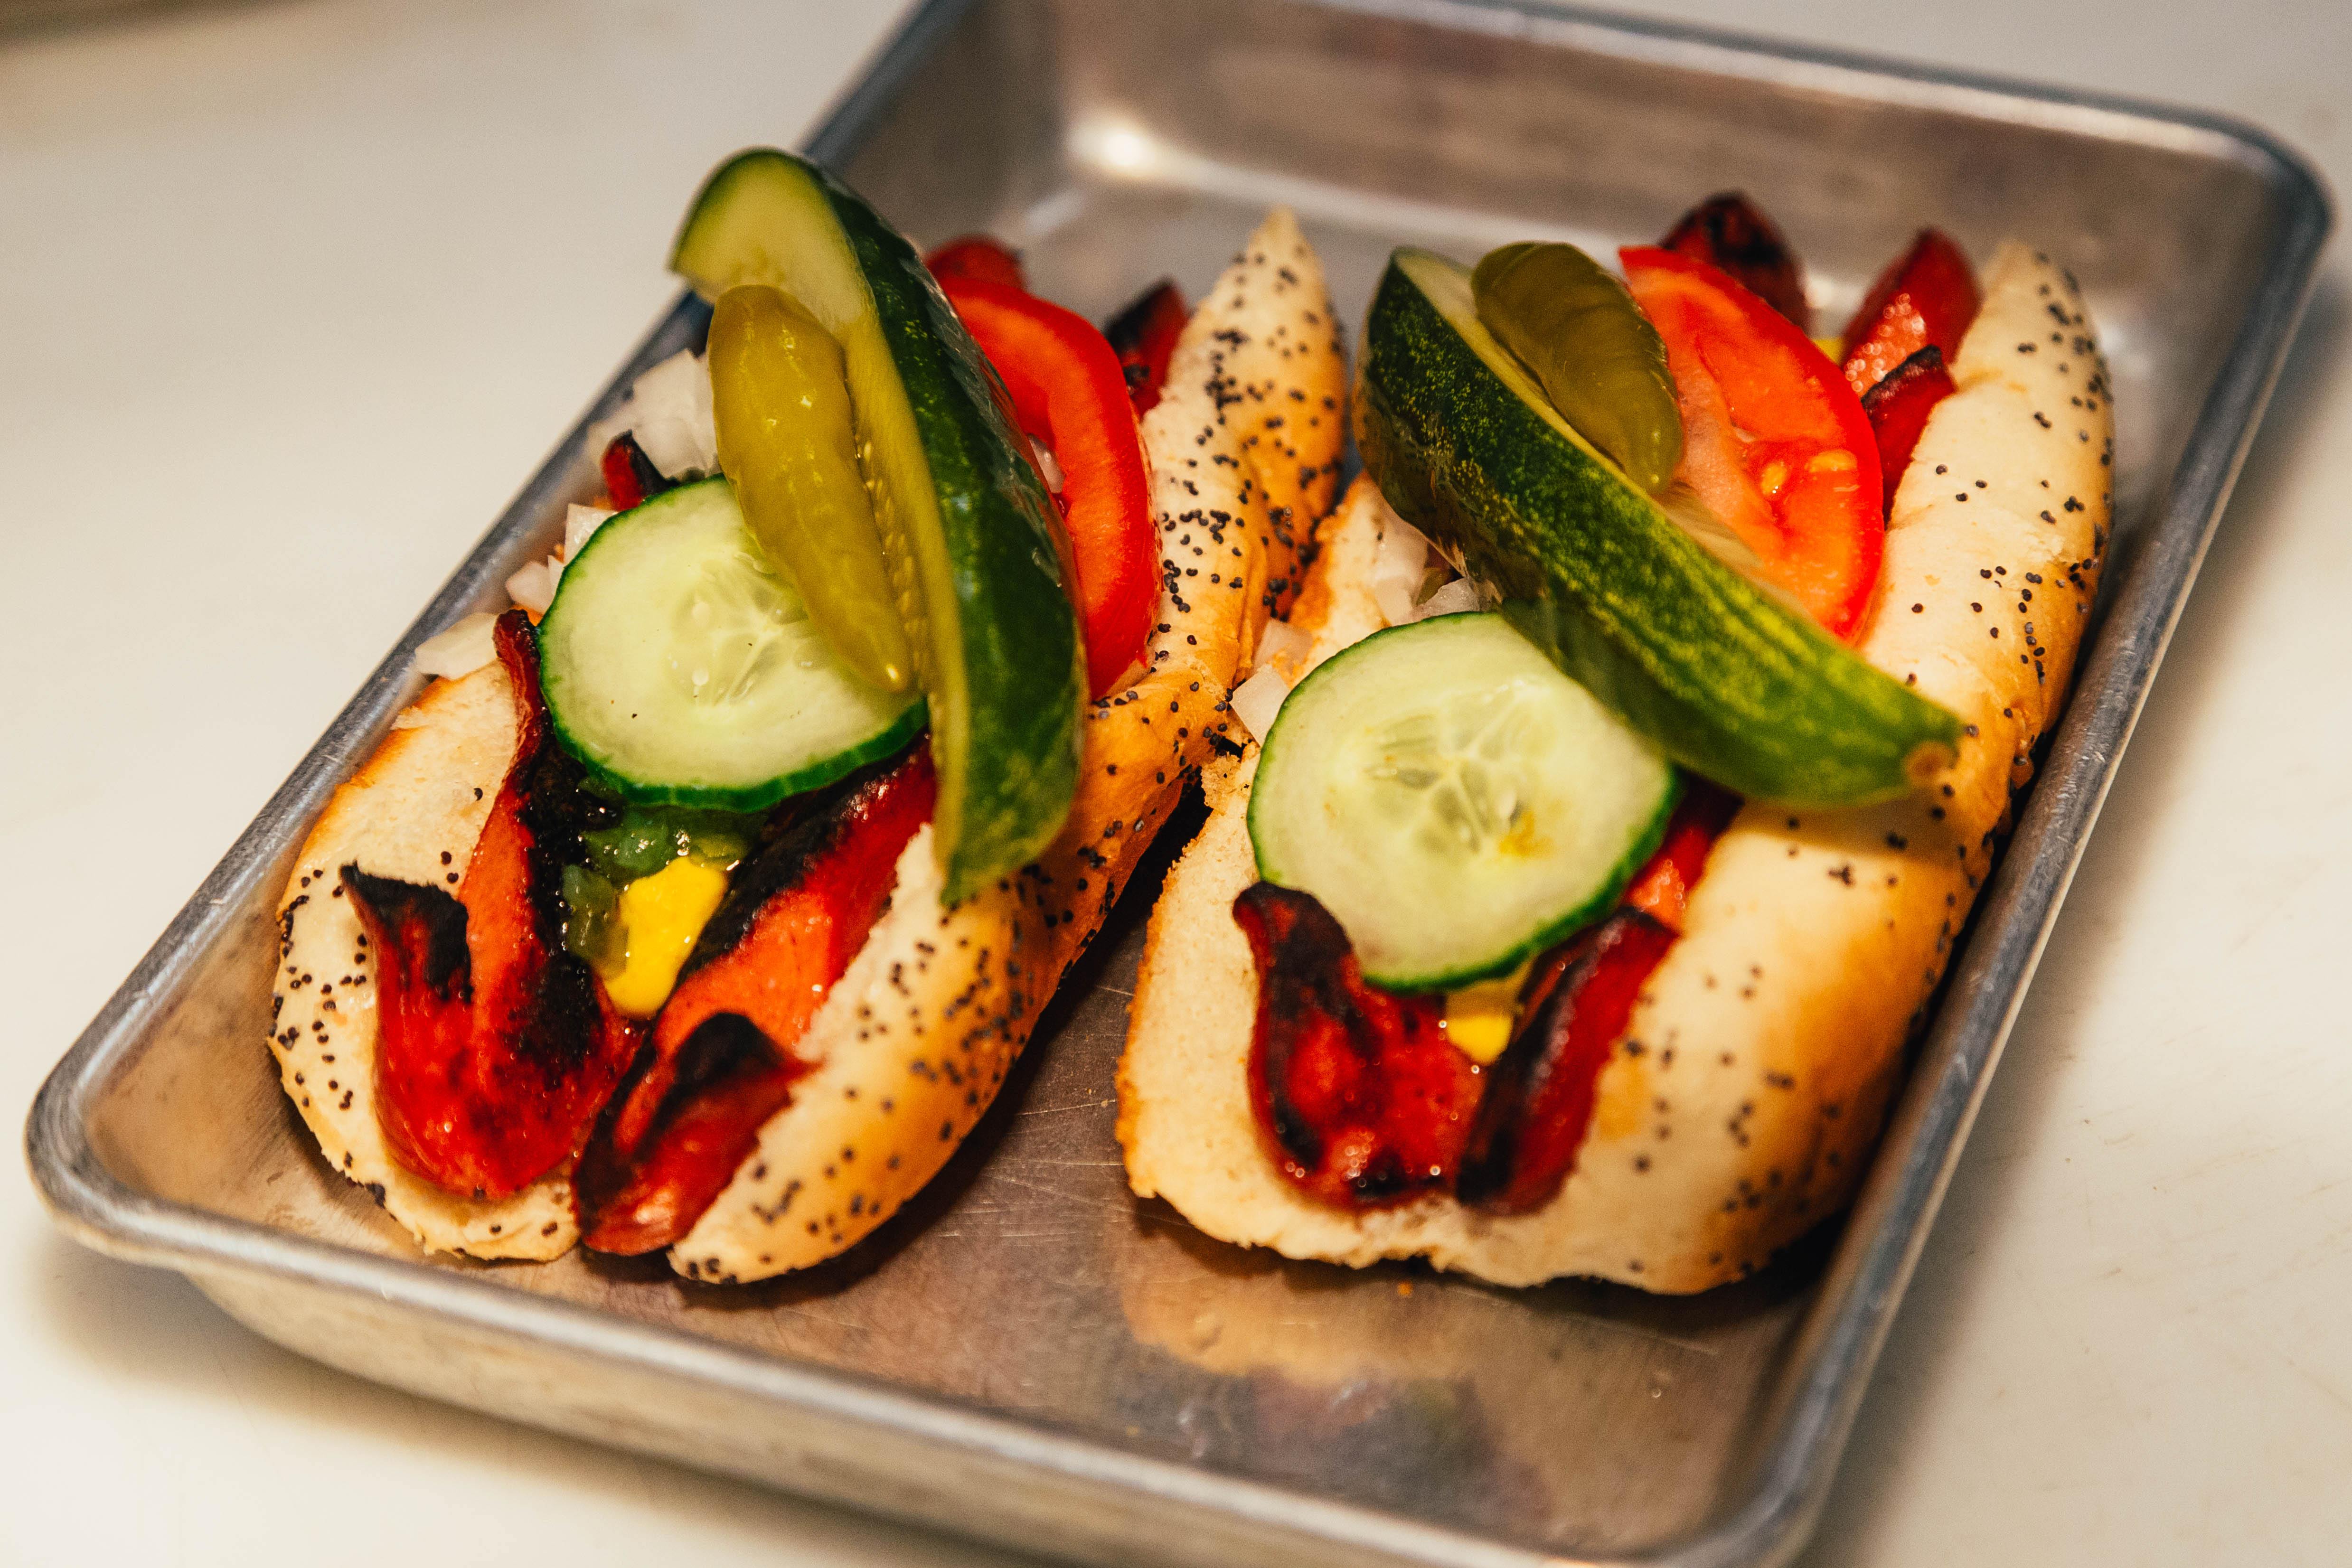 Treasured Lakeview Hot Dog Stand Popping Up at Schubas Over Memorial Day Weekend